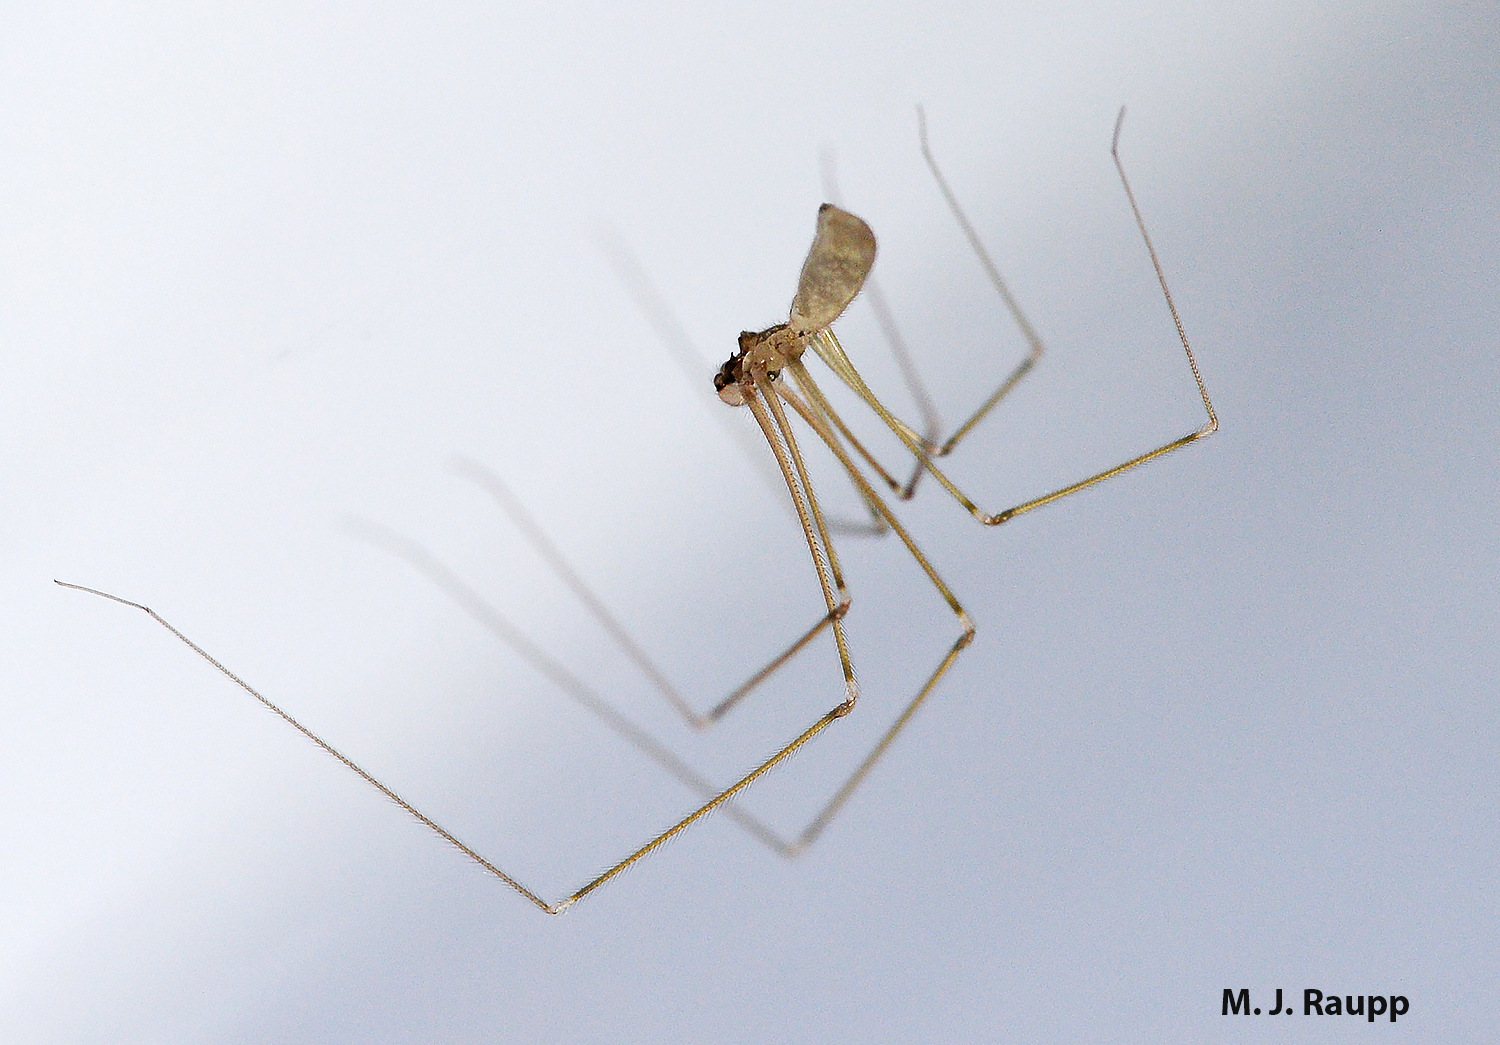 It's easy to see why cellar spiders are often called daddy-long-legs.